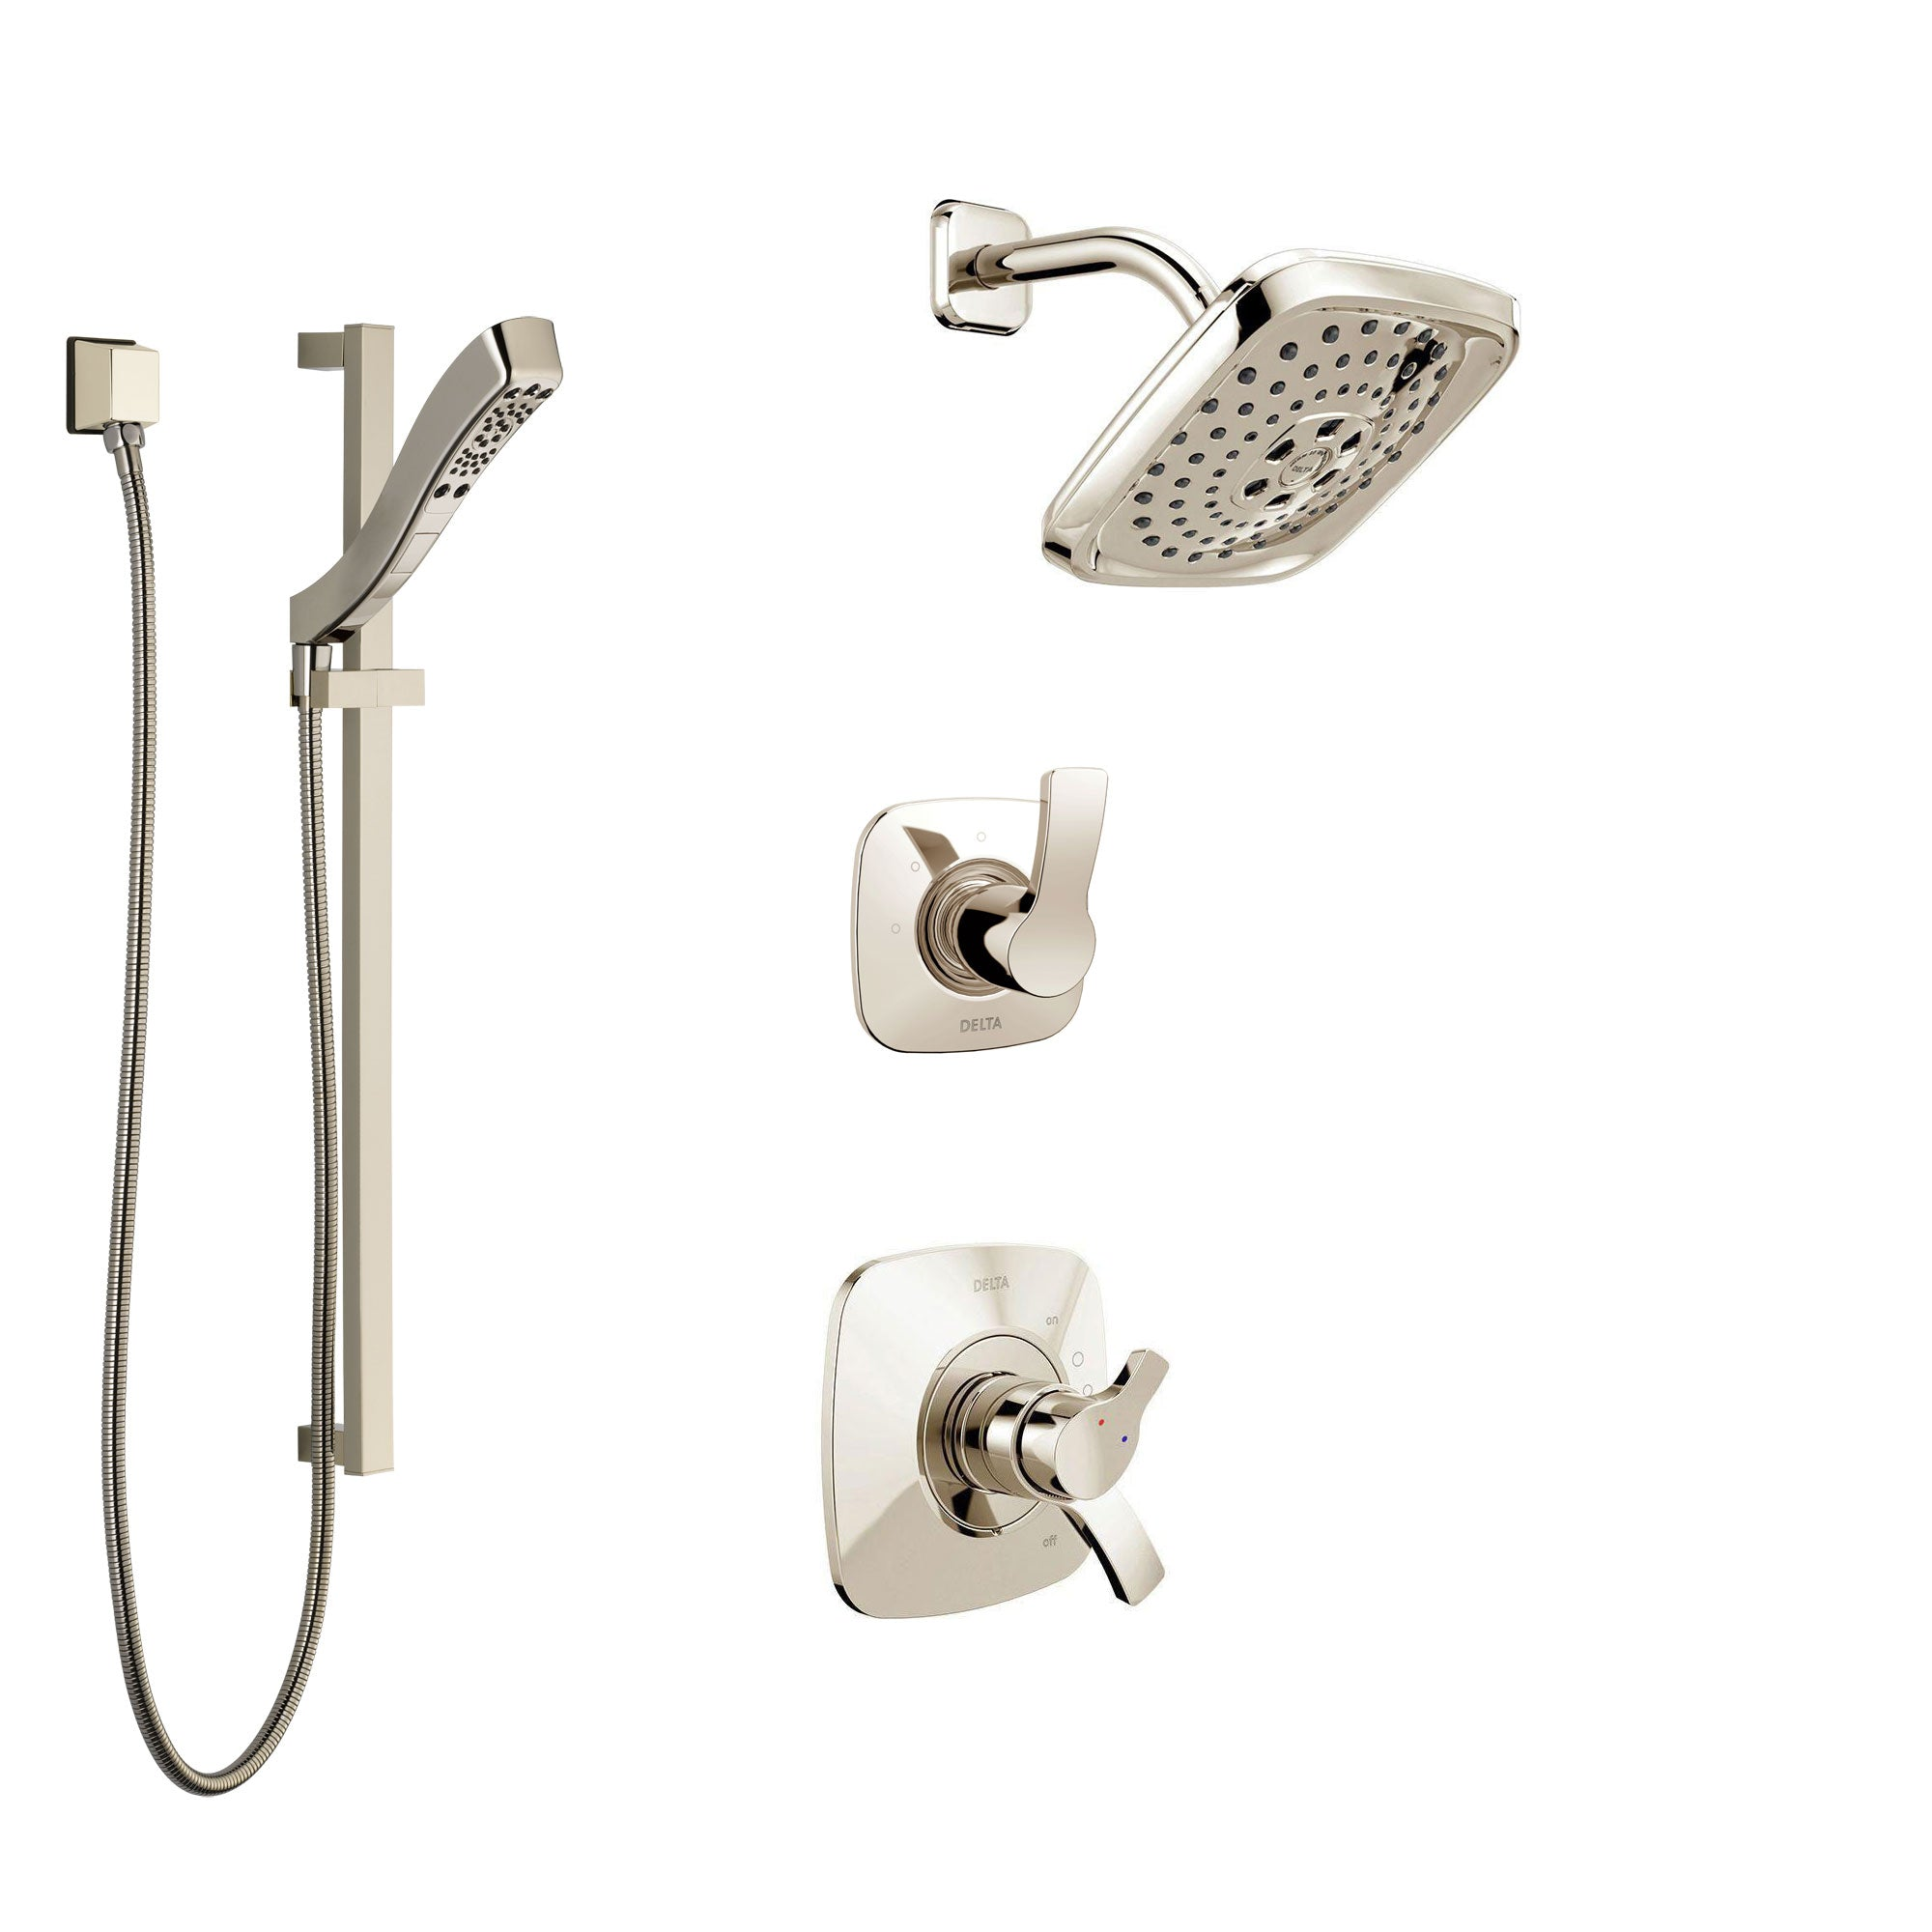 Delta Tesla Polished Nickel Finish Shower System with Dual Control Handle, 3-Setting Diverter, Showerhead, and Hand Shower with Slidebar SS17252PN2